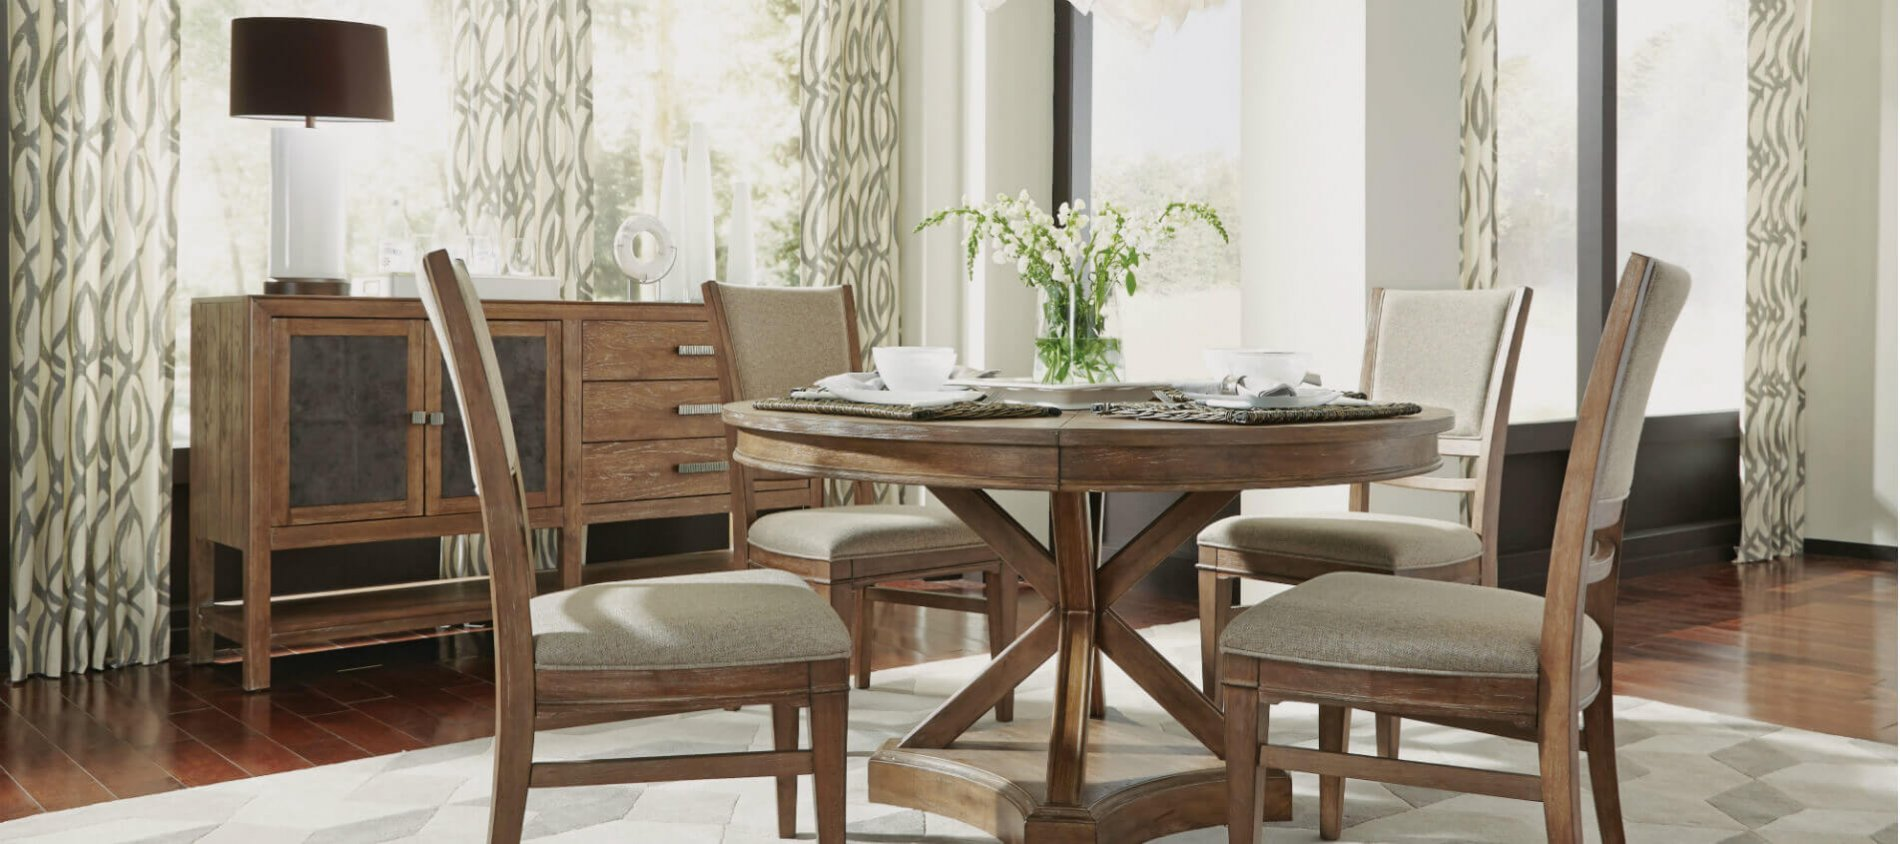 Hampton Furniture Collection Decorating Home Dining Area